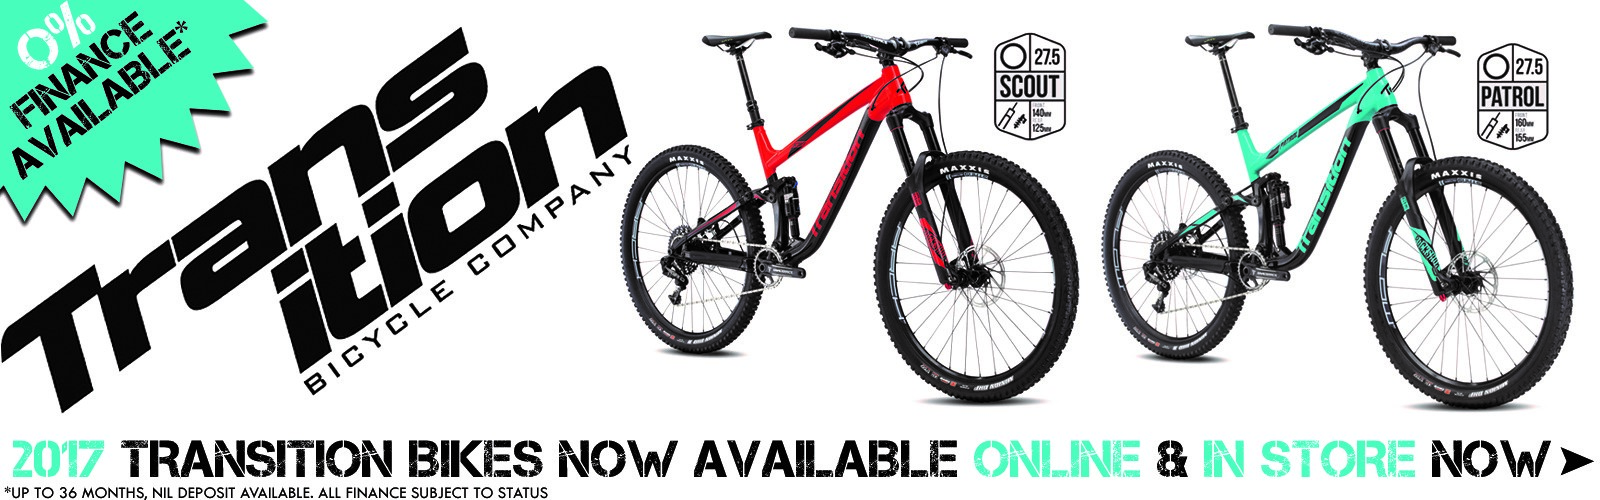 DiamondBack 2017 Range